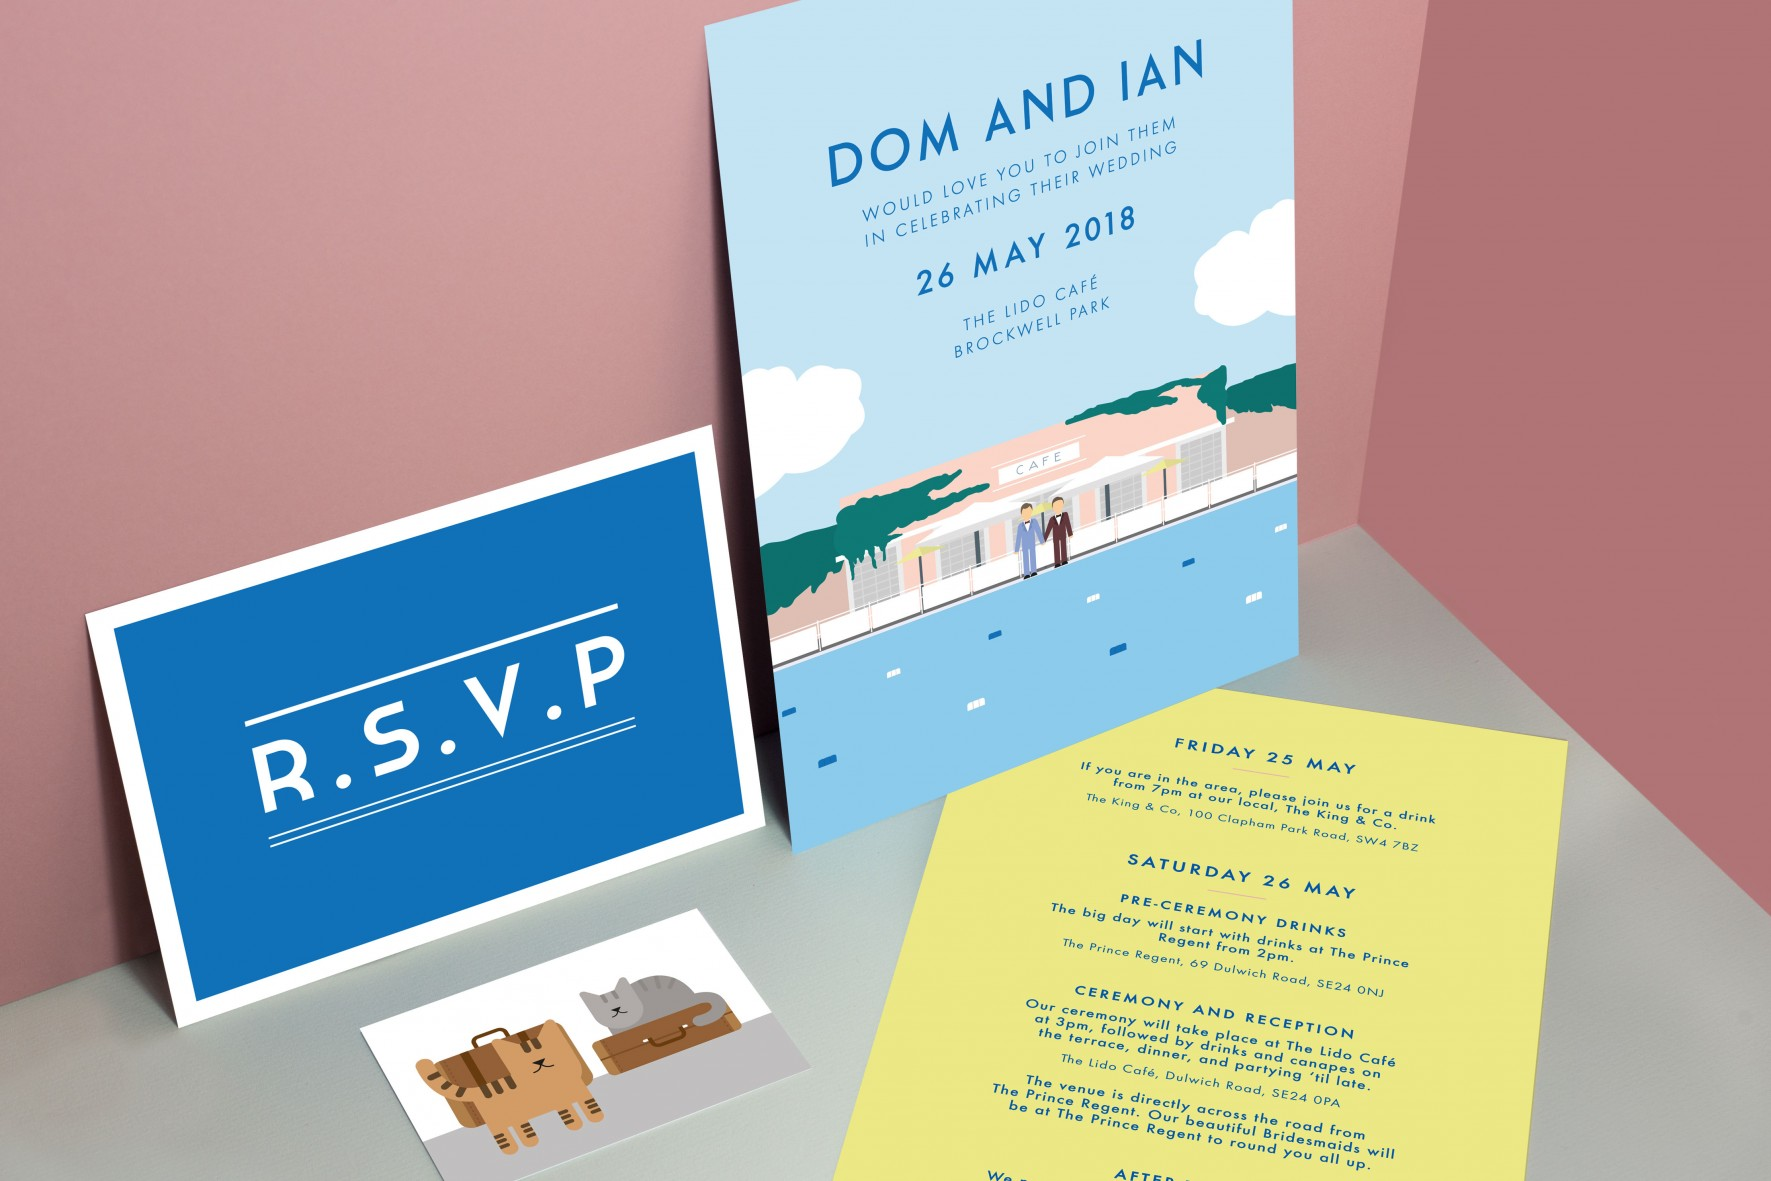 Art deco travel poster inspired colourful modern wedding invitation - Brockwell Lido by www.rosepaperscissors.com